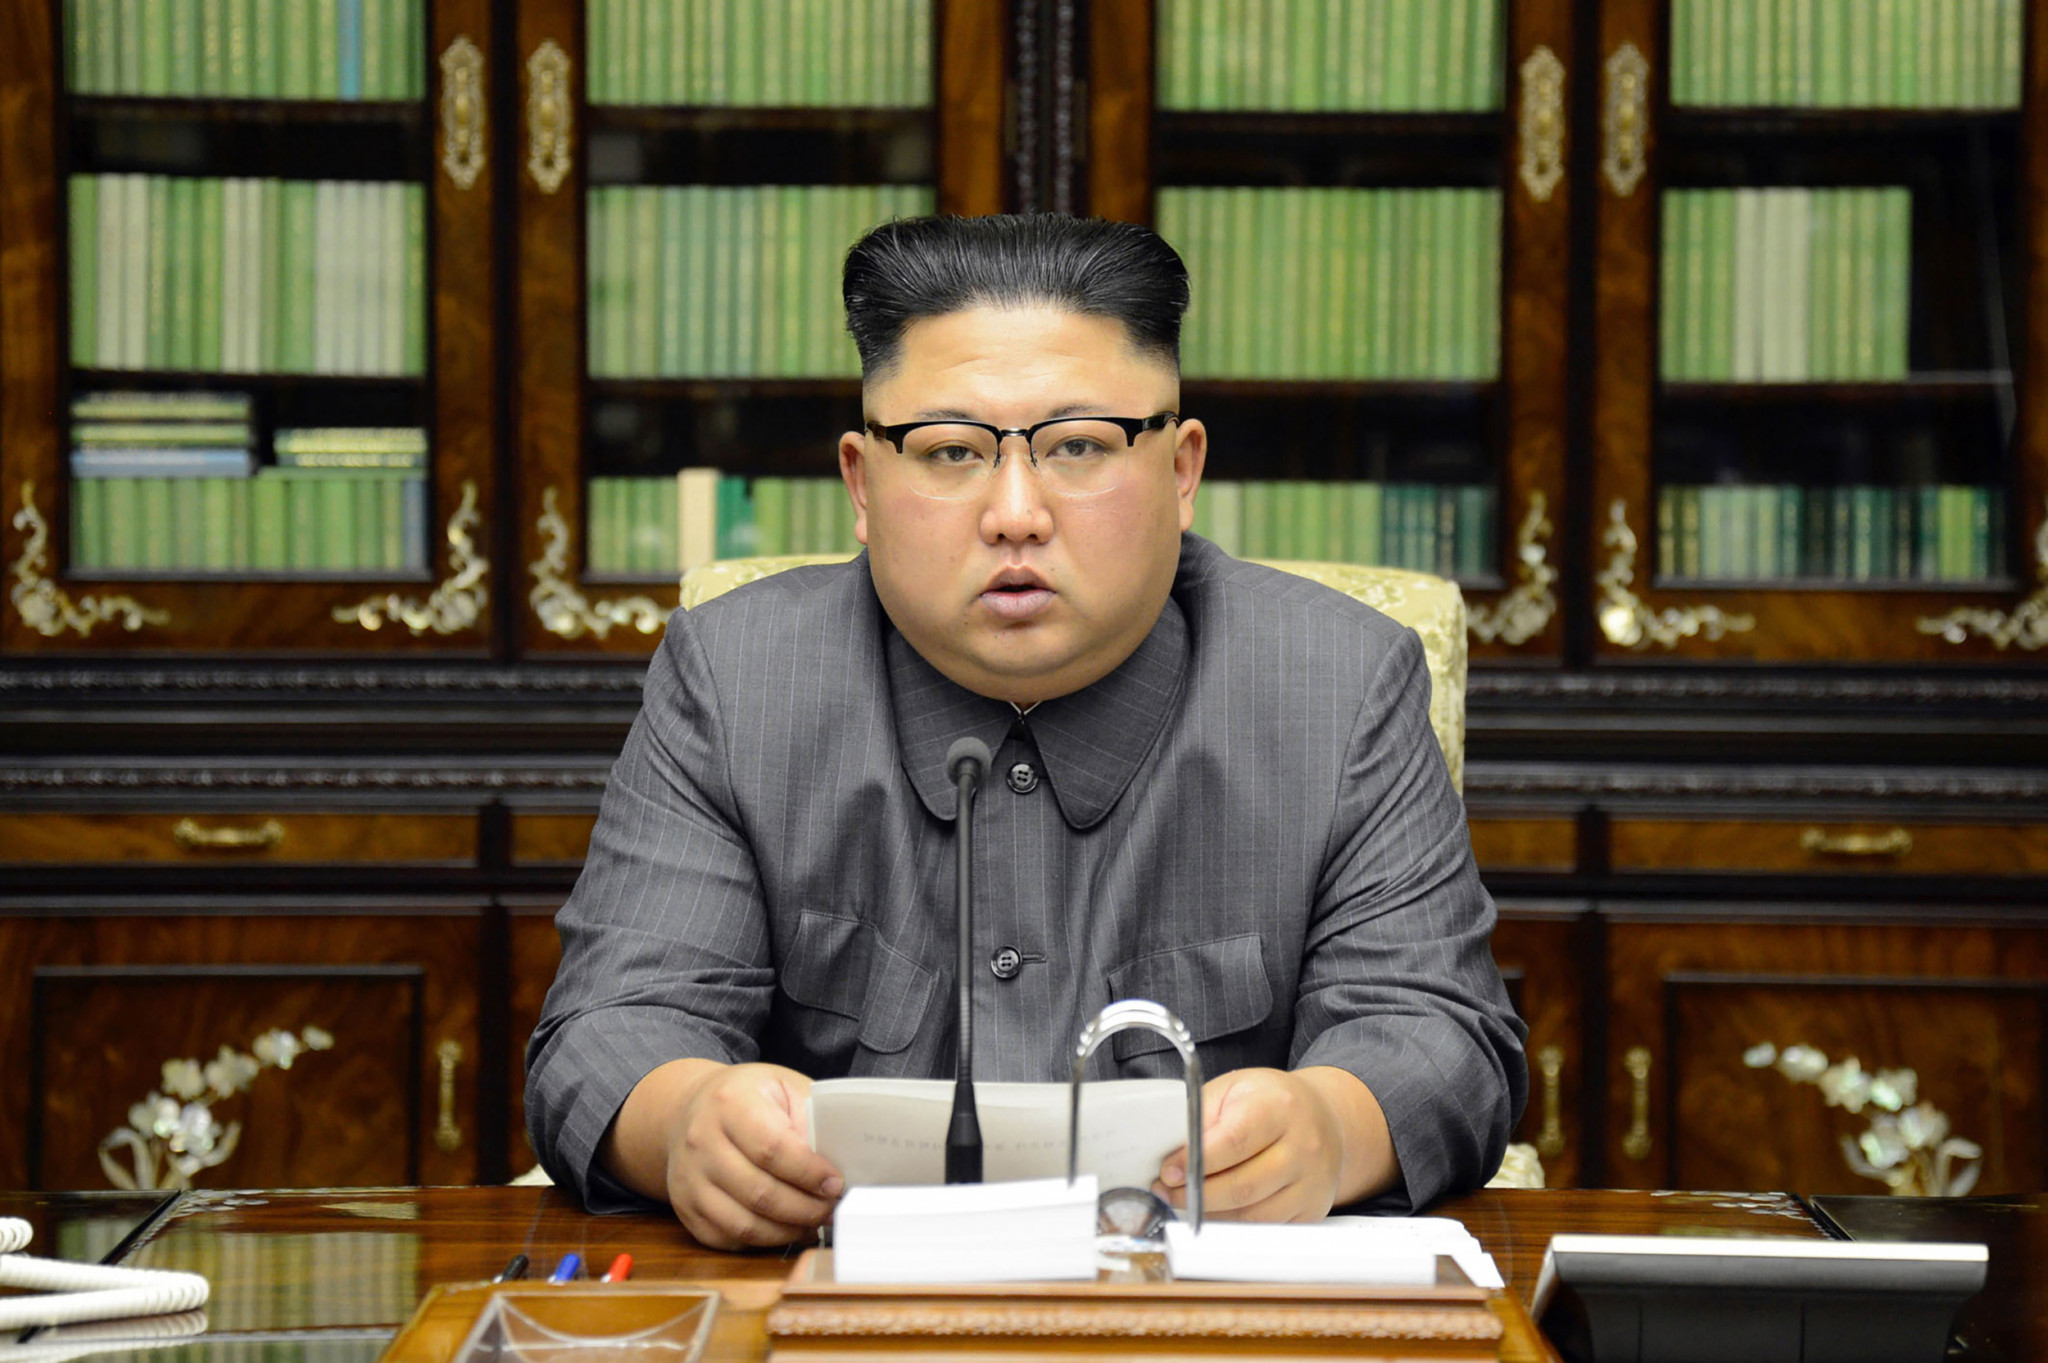 Relations between the United States and North Korea are at an all-time low following a series of insults traded between Donald Trump and Kim Jong Un ©Getty Images